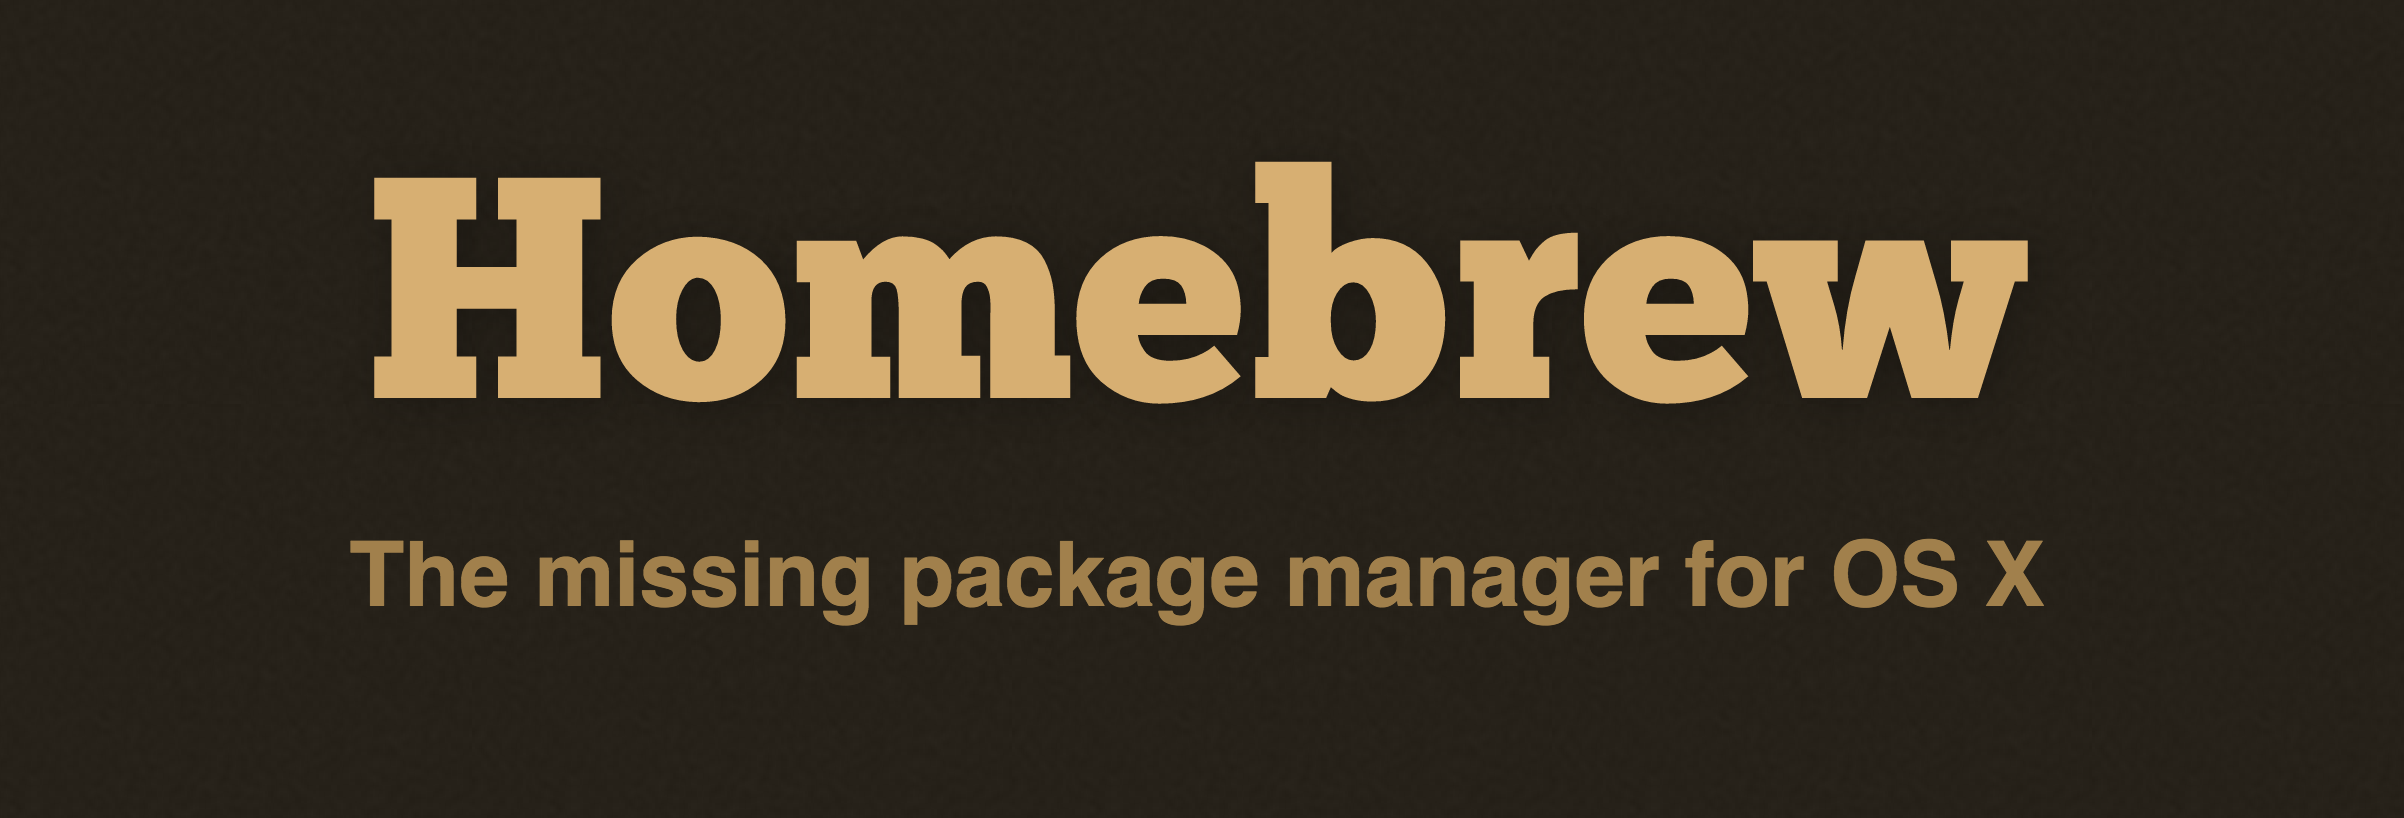 Homebrew package manager logo